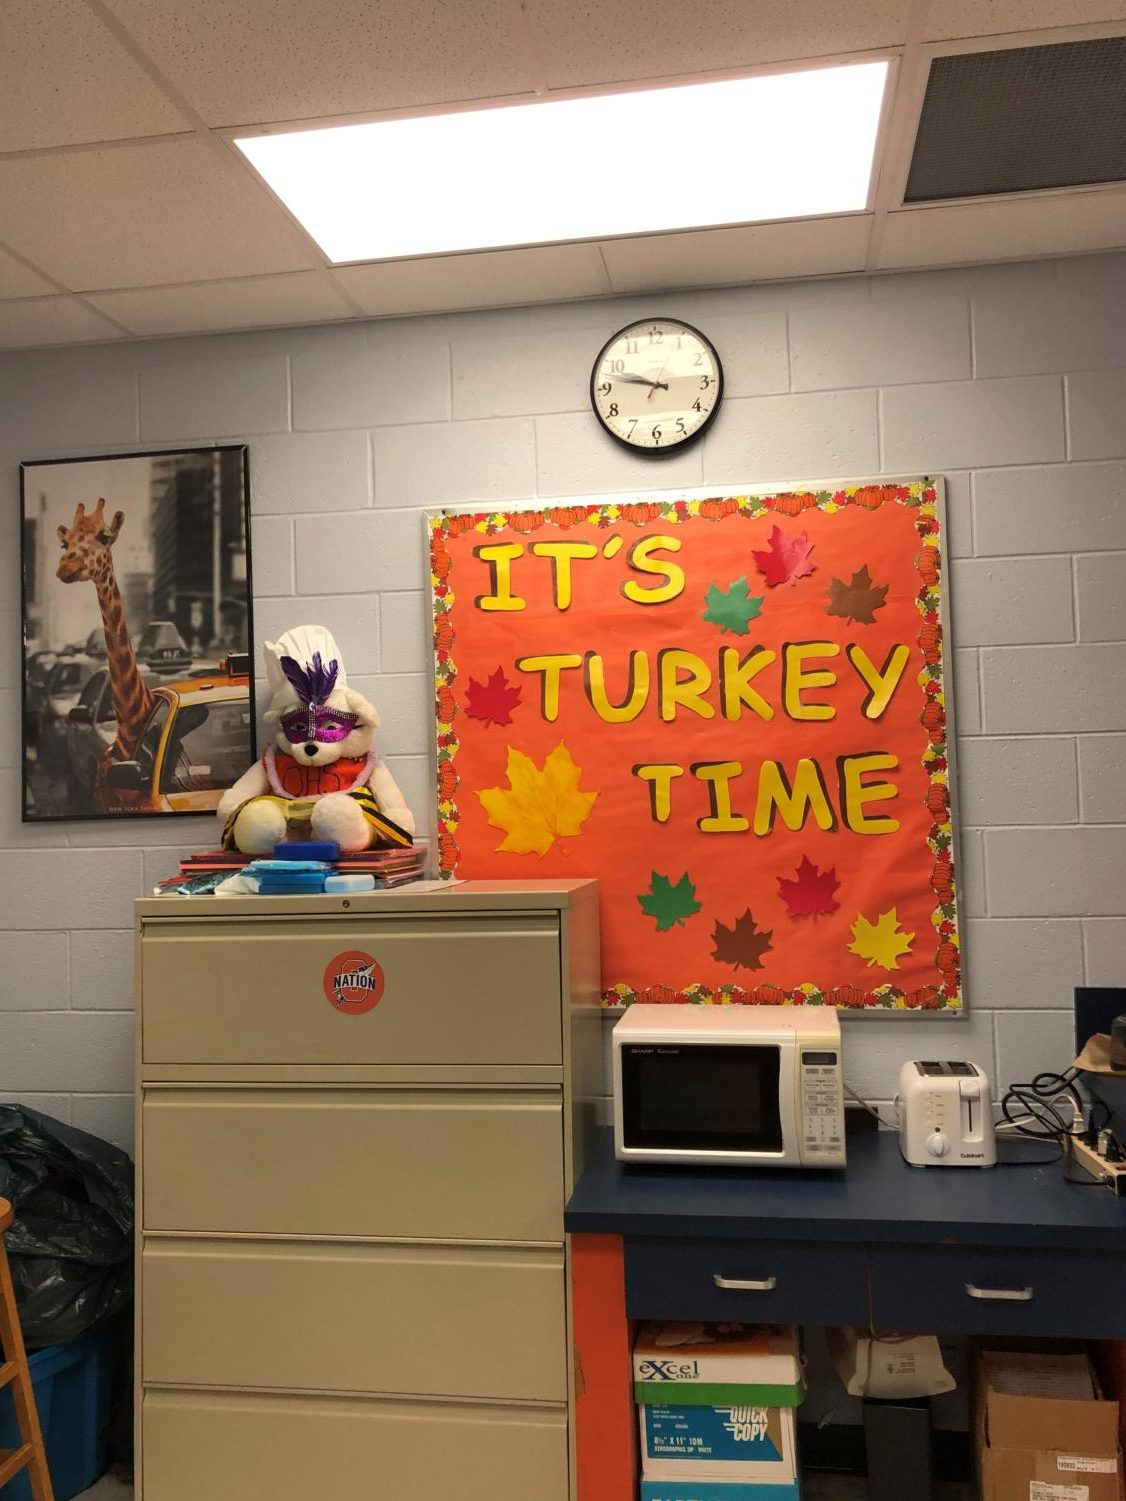 The office is decorated for Thanksgiving.